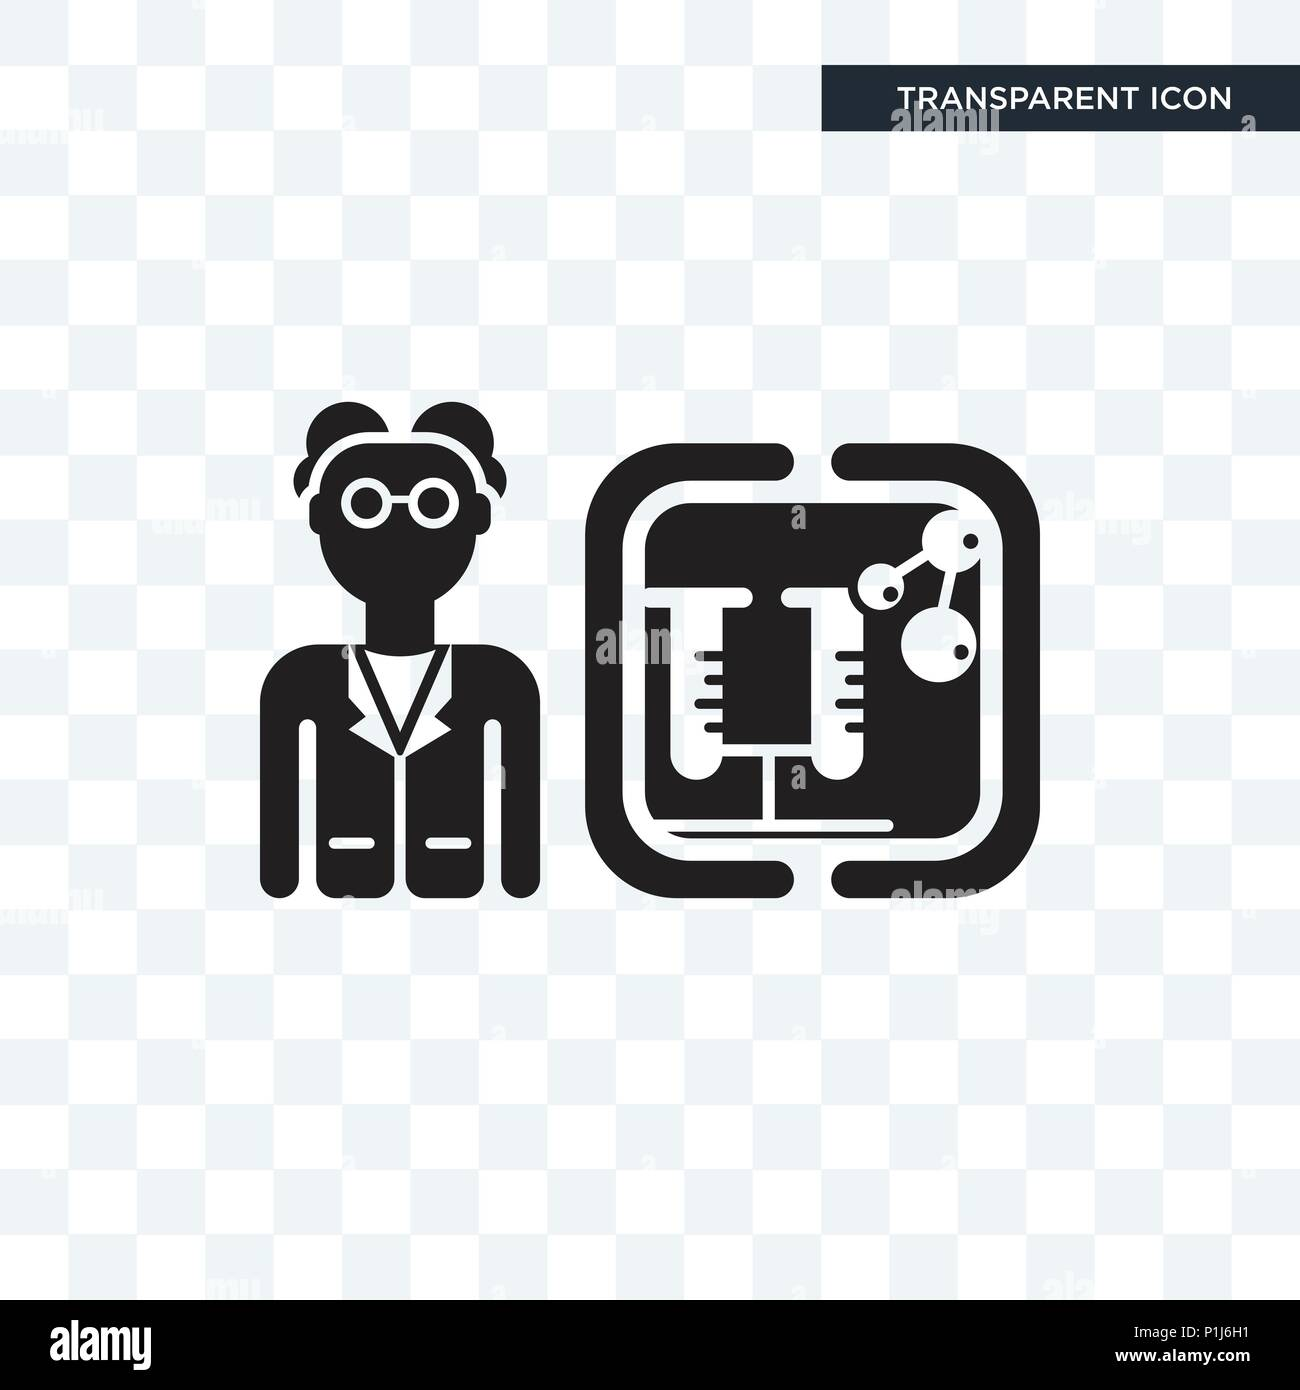 scientist vector icon isolated on transparent background scientist logo concept stock vector image art alamy https www alamy com scientist vector icon isolated on transparent background scientist logo concept image207539389 html